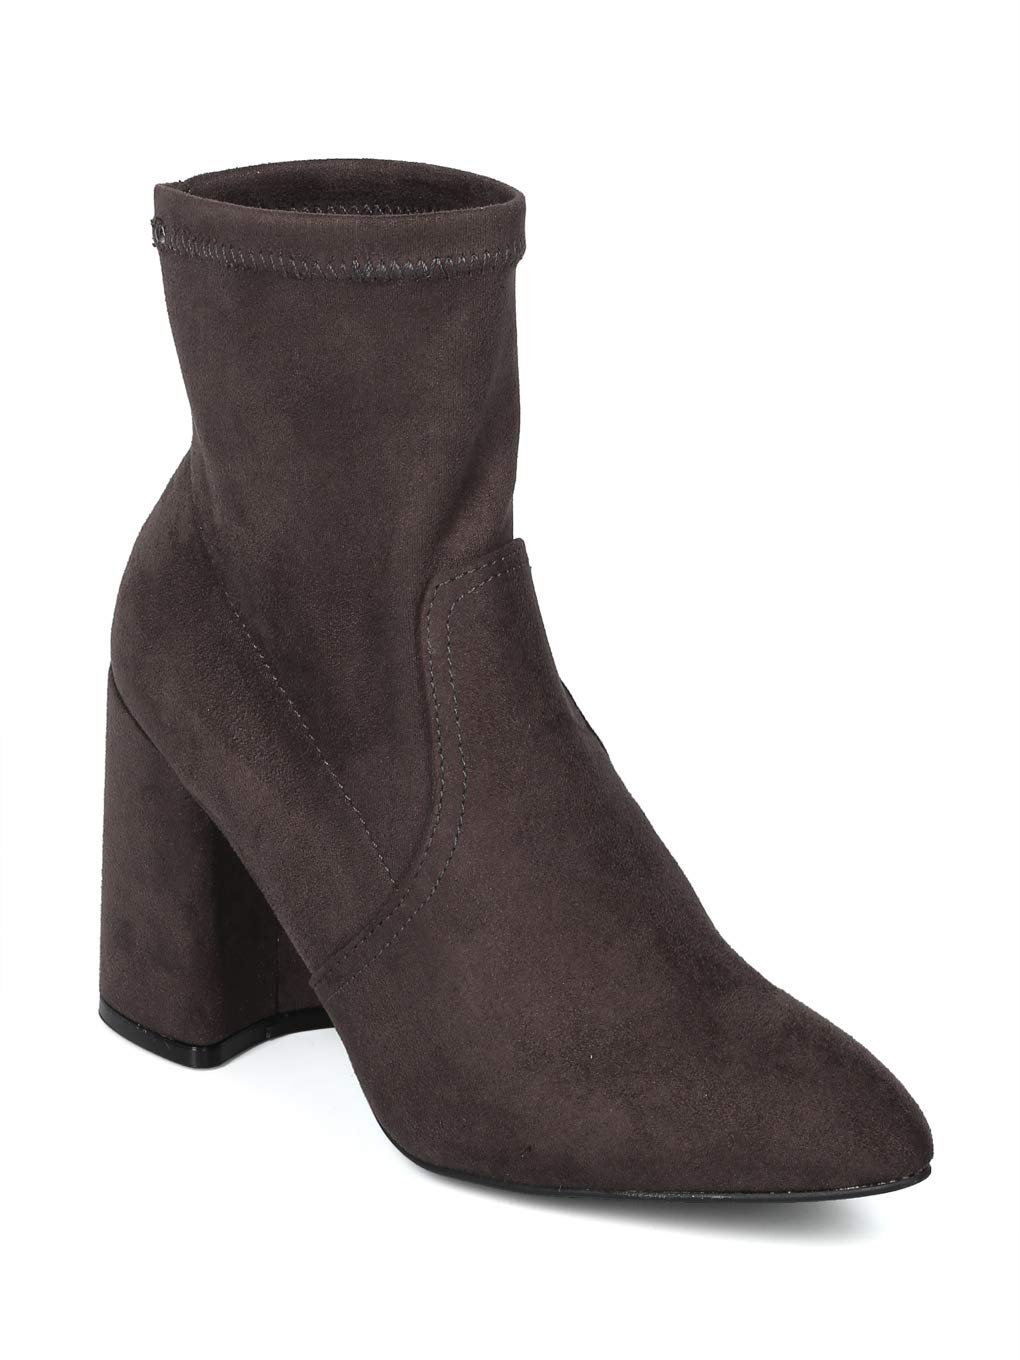 Alrisco Women Faux Suede Stretch Pointy Toe Chunky Heel Riding Bootie - IB14